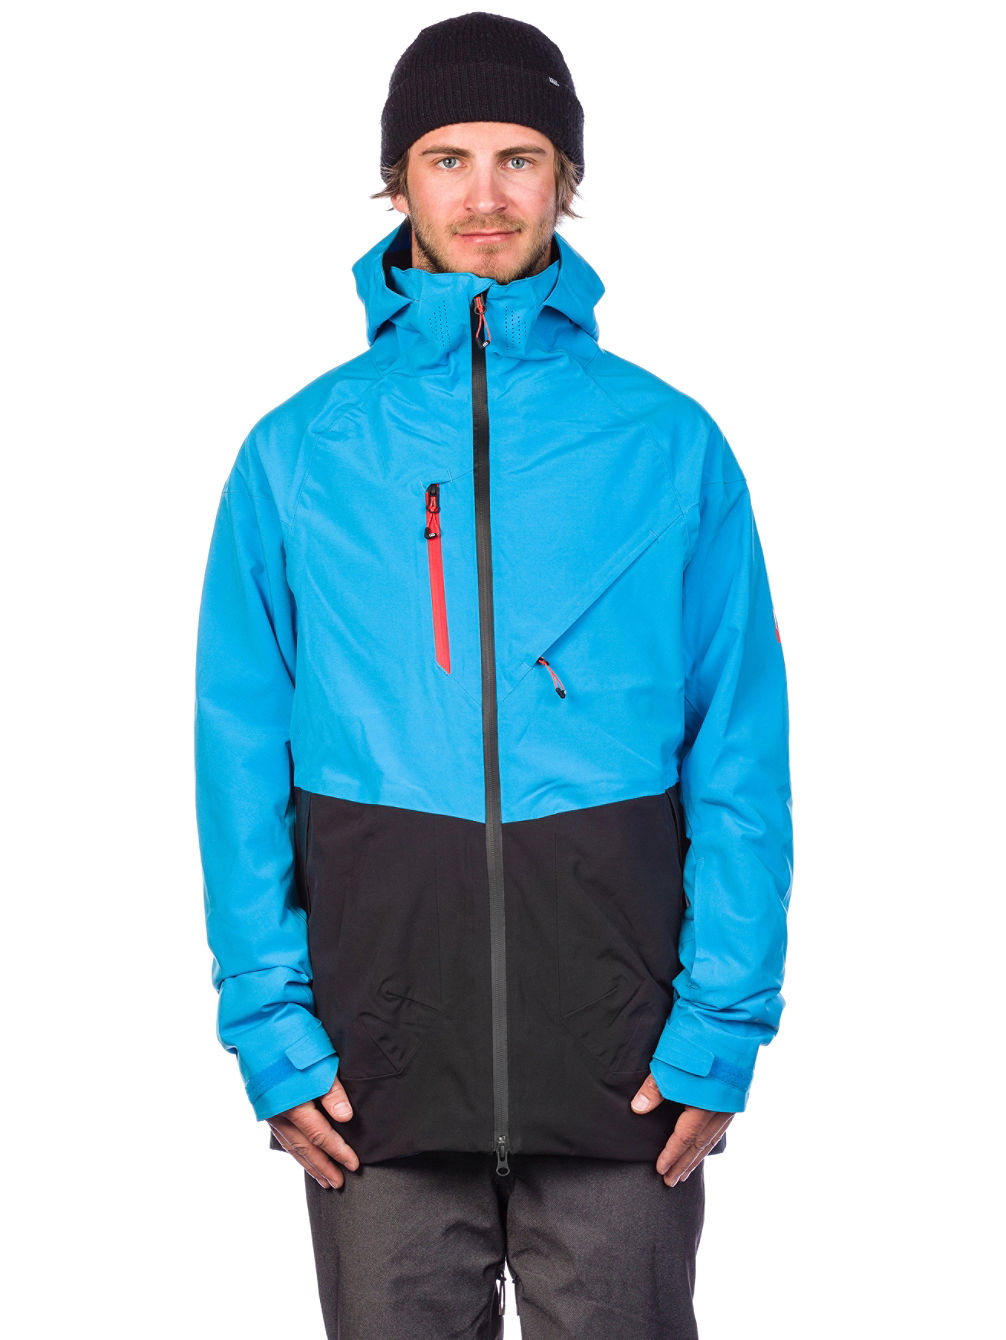 GLCR Hydrastash Insulated Jacke